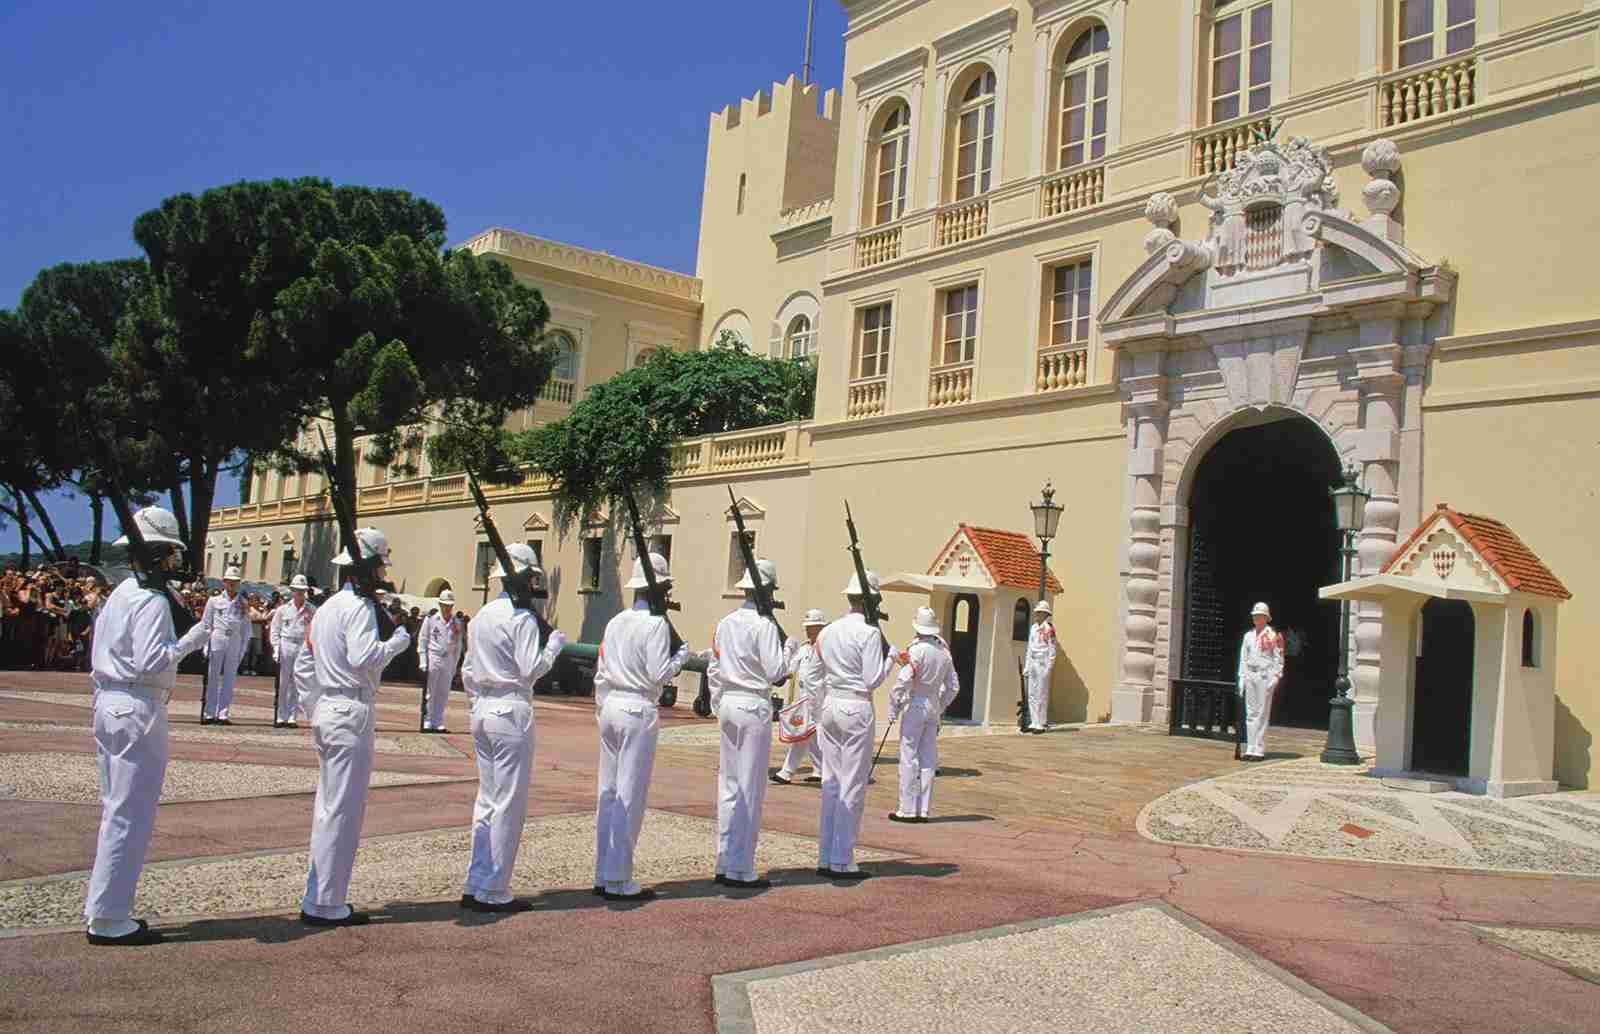 Monaco - Changing of the Guard outside Princes Palace